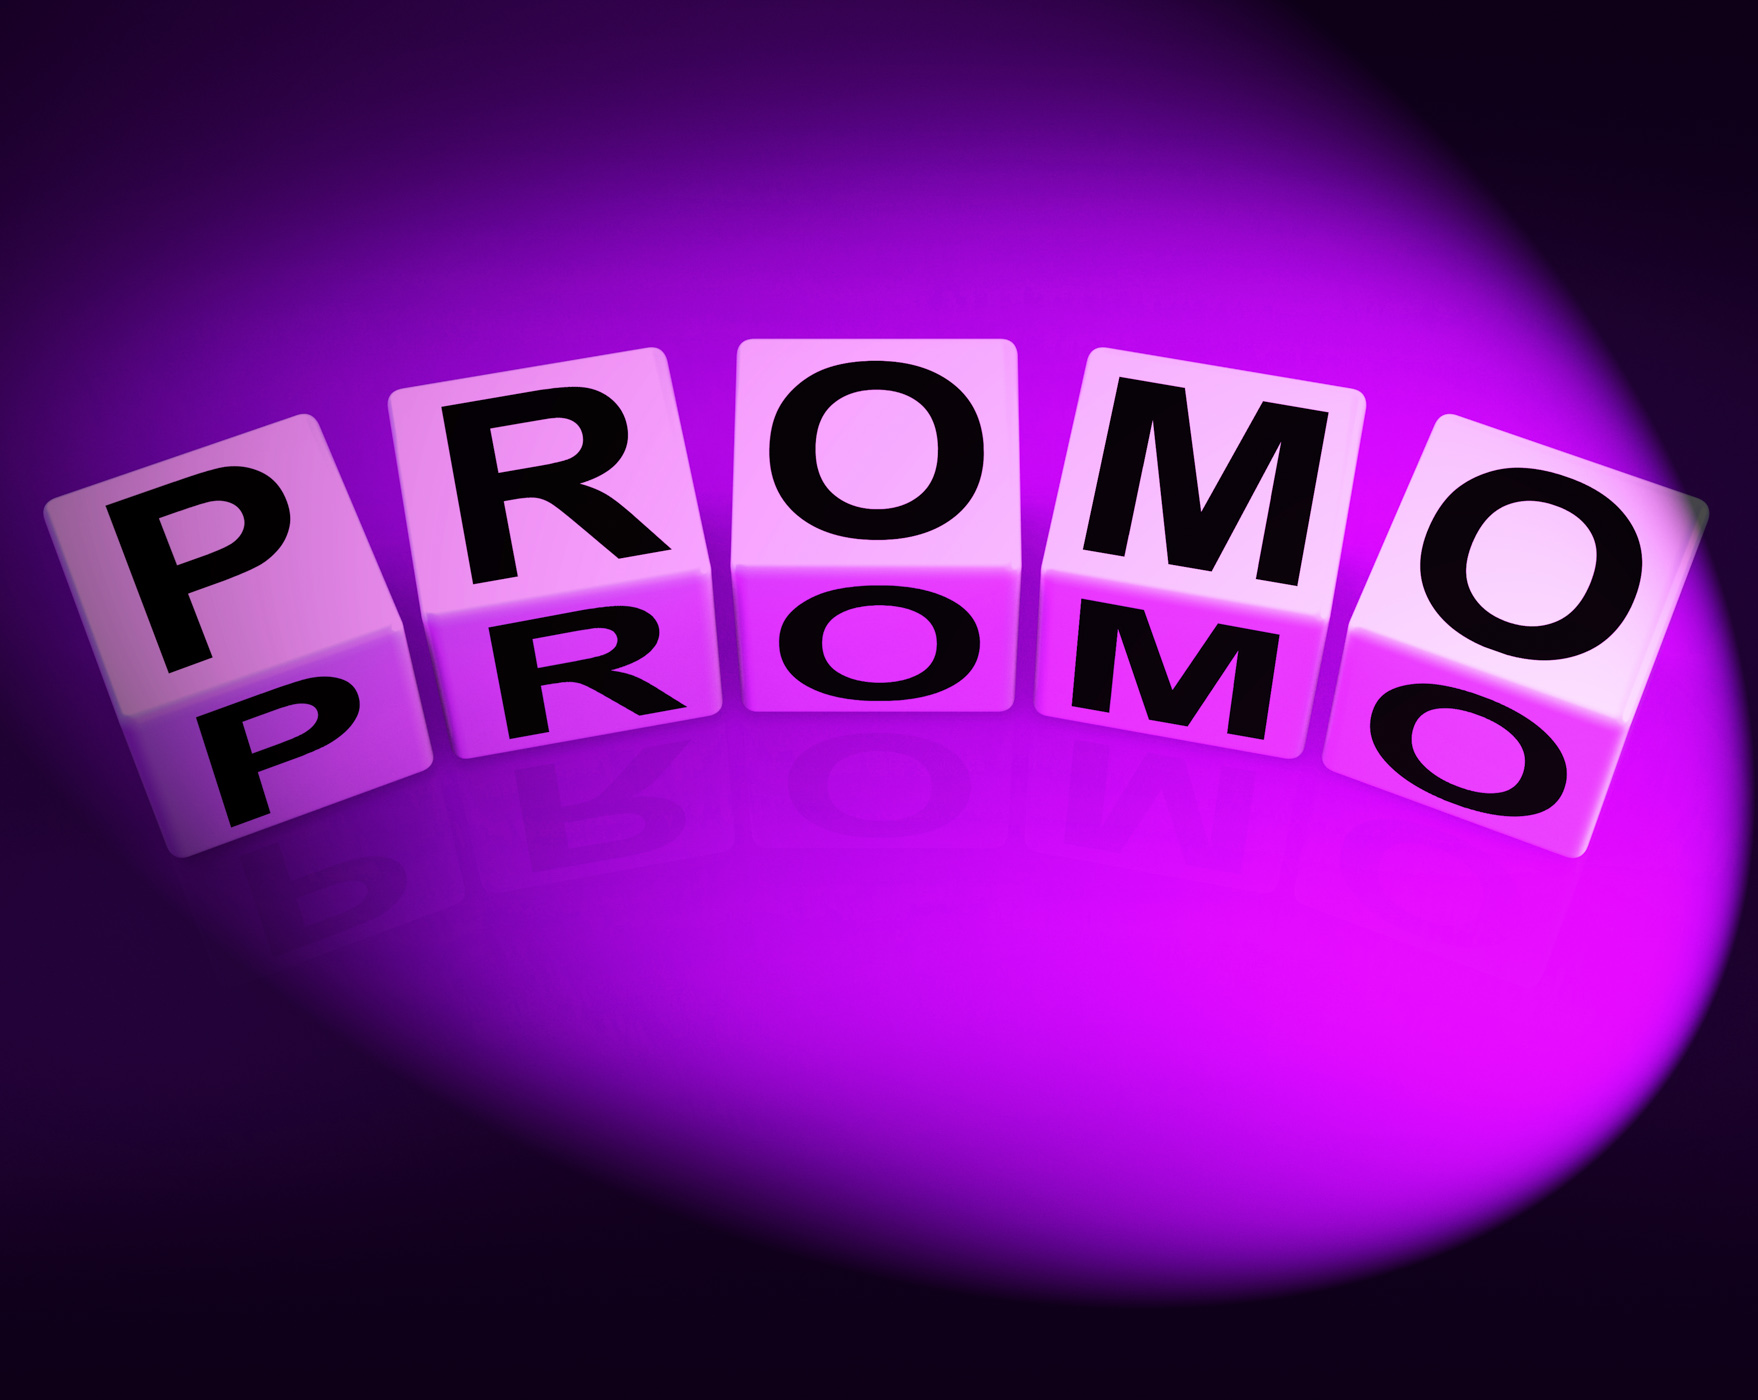 Promo dice show advertisement and broadcasting promotions photo